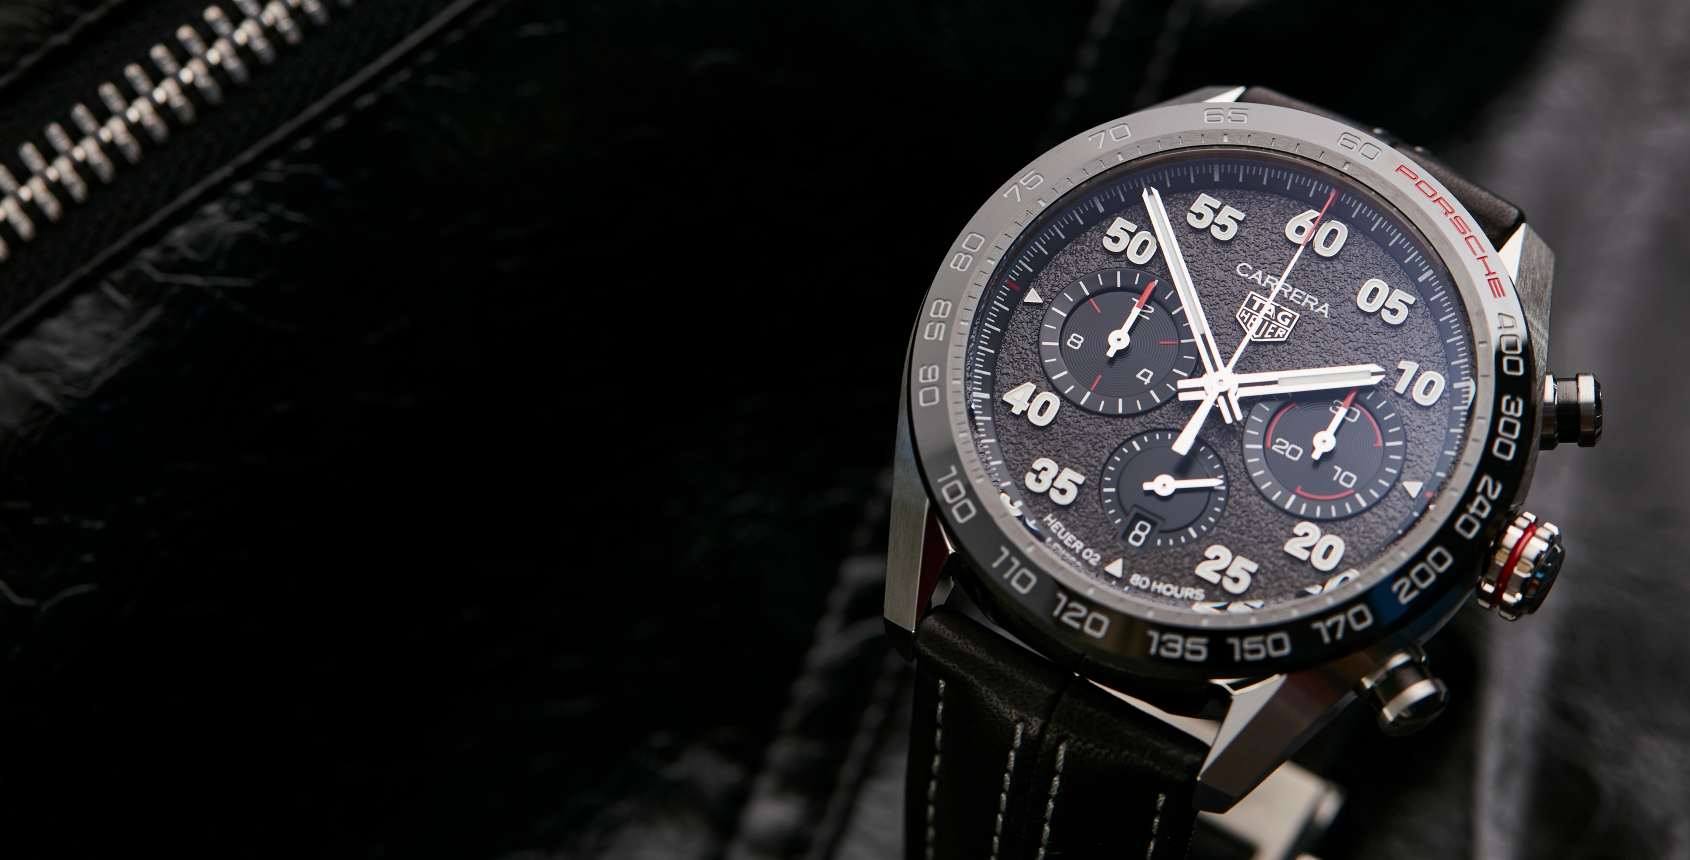 VIDEO: The TAG Heuer Carrera Porsche Chronograph is a marriage made in motorsports heaven